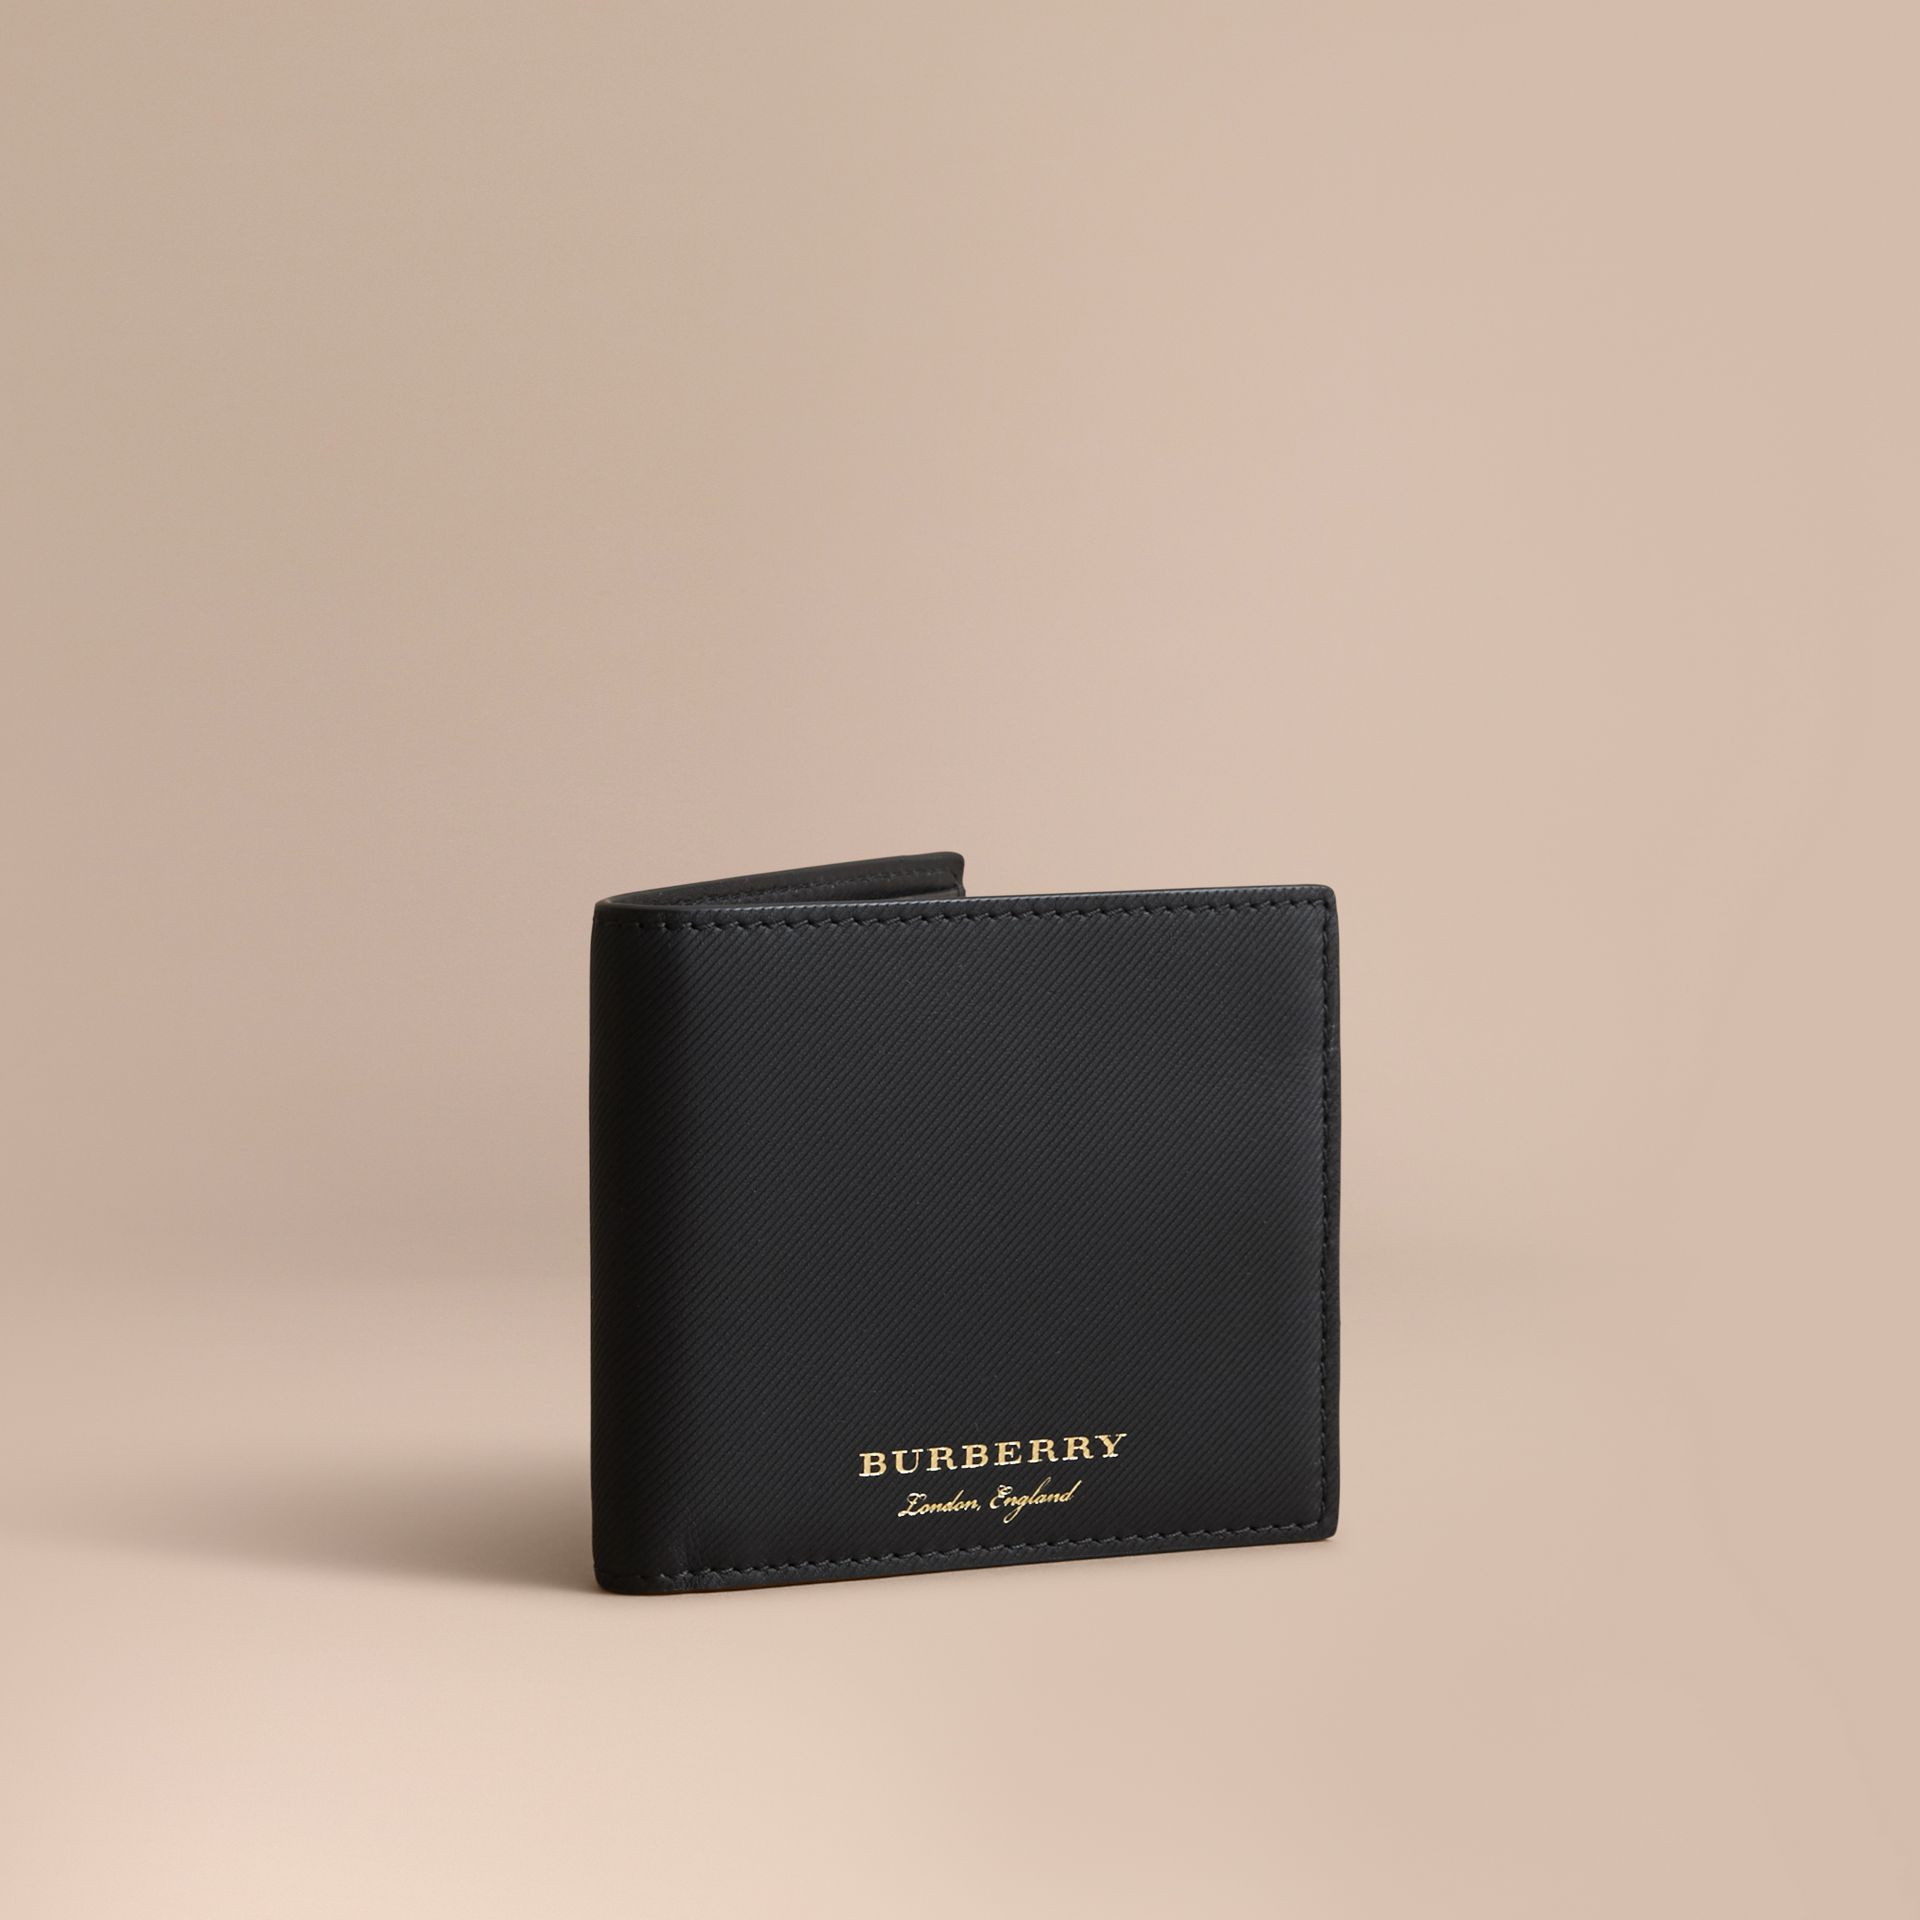 Trench Leather International Bifold Wallet in Black - Men | Burberry Australia - gallery image 1